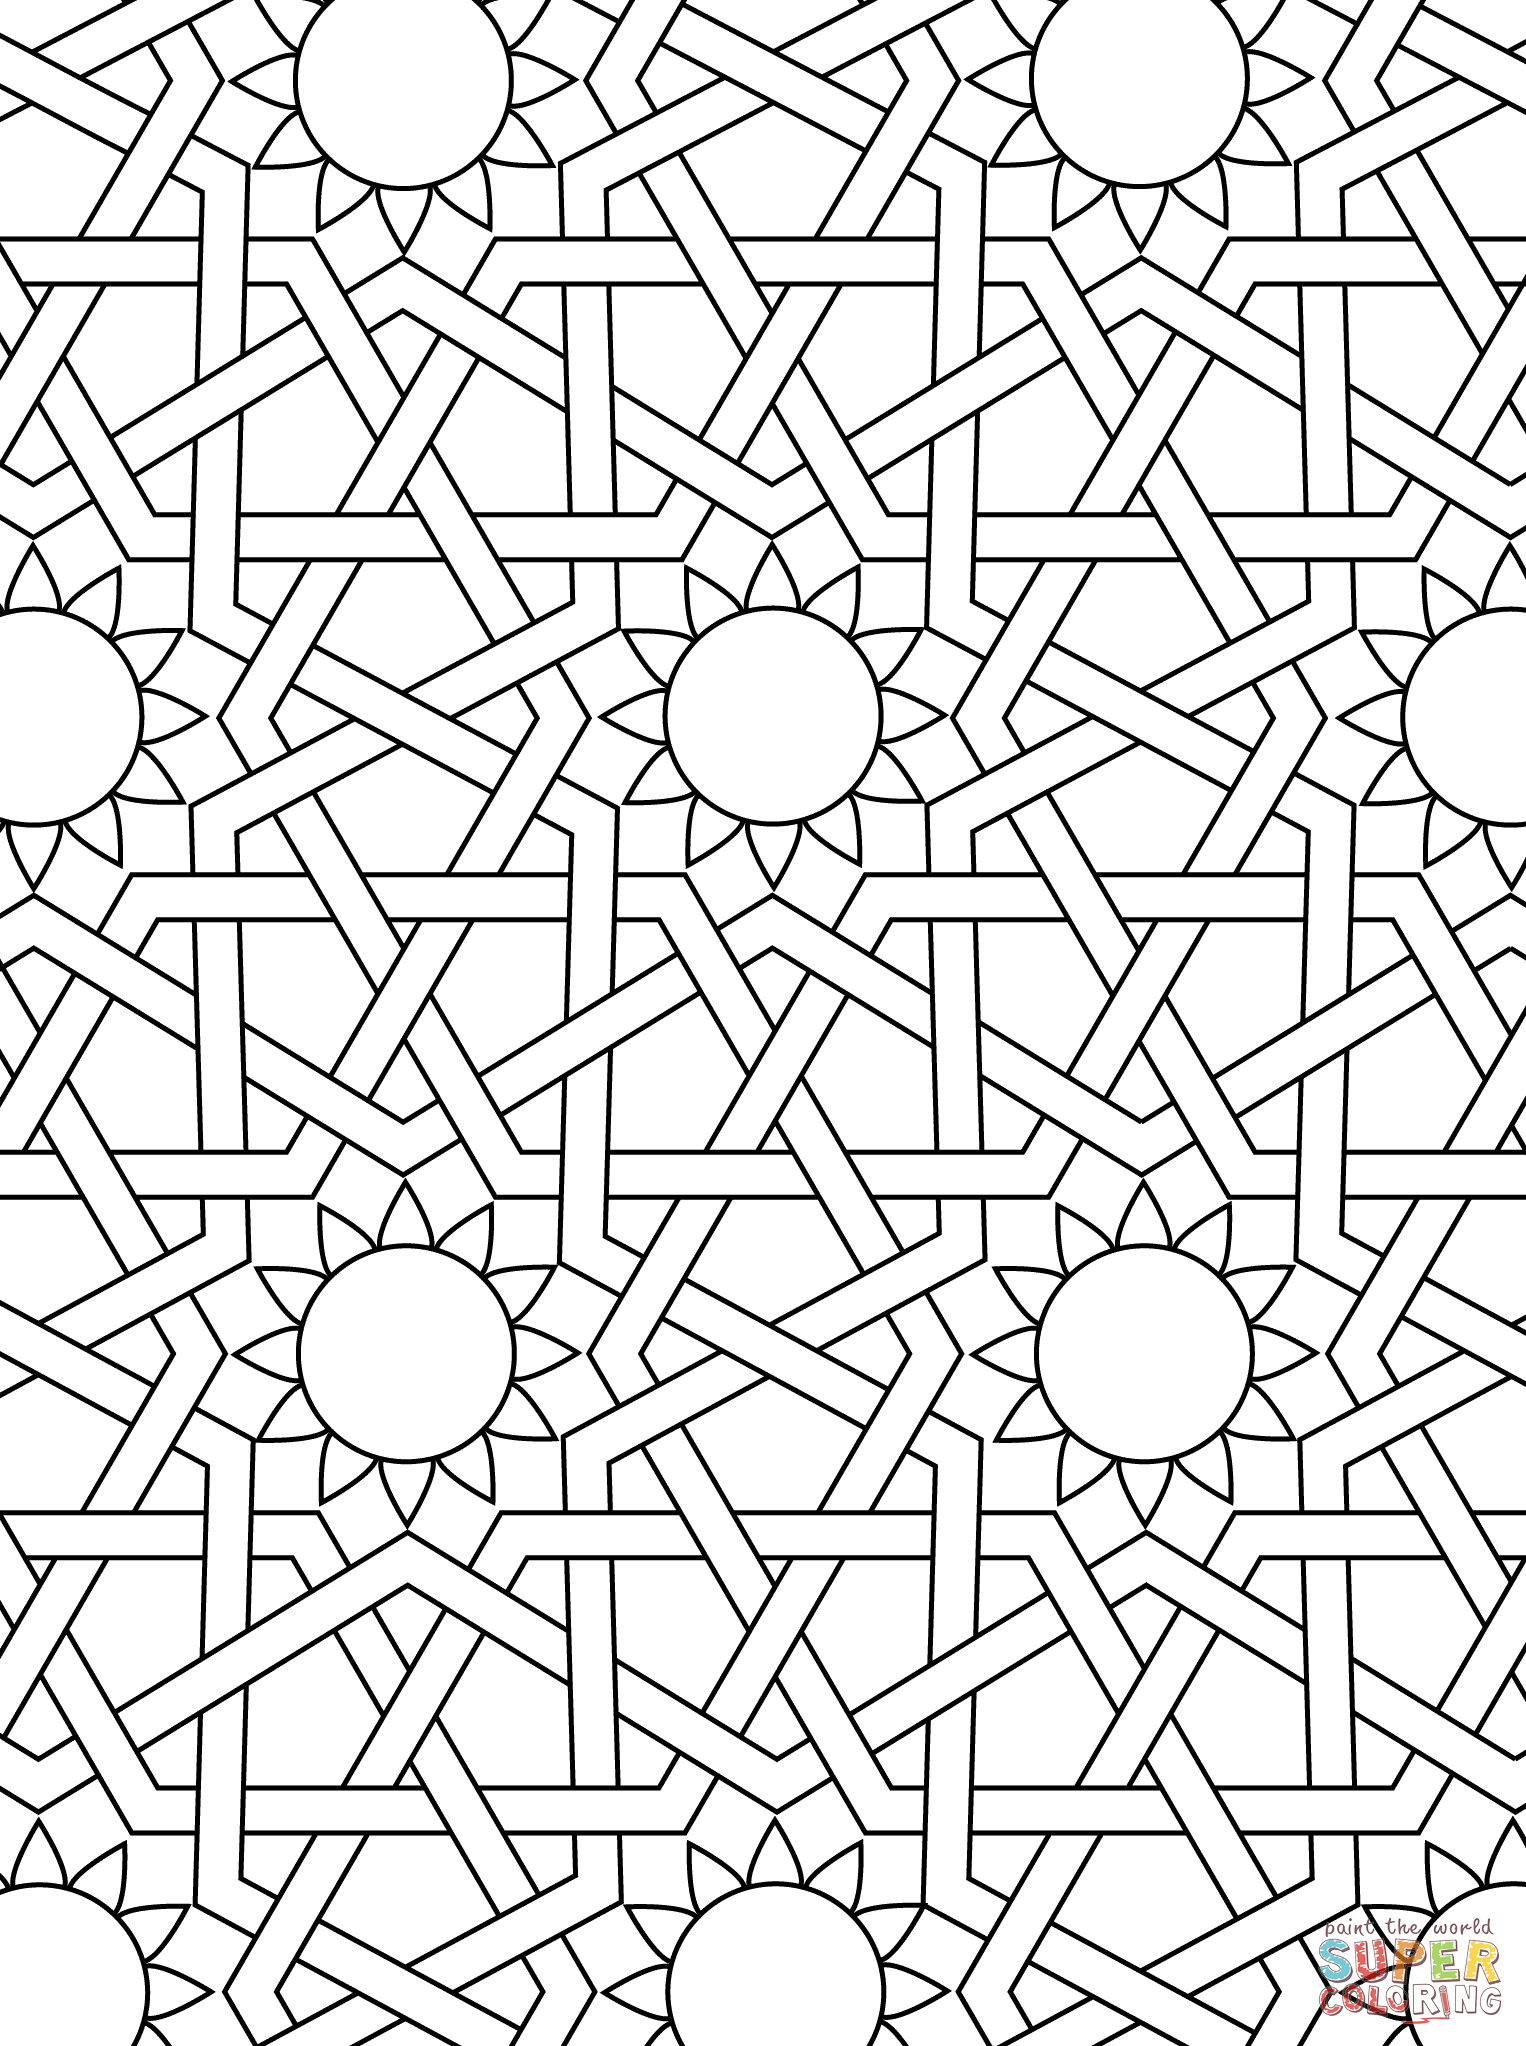 islamic ornament mosaic coloring page from mosaic category select from 26073 printable crafts of cartoons nature animals bible and many more